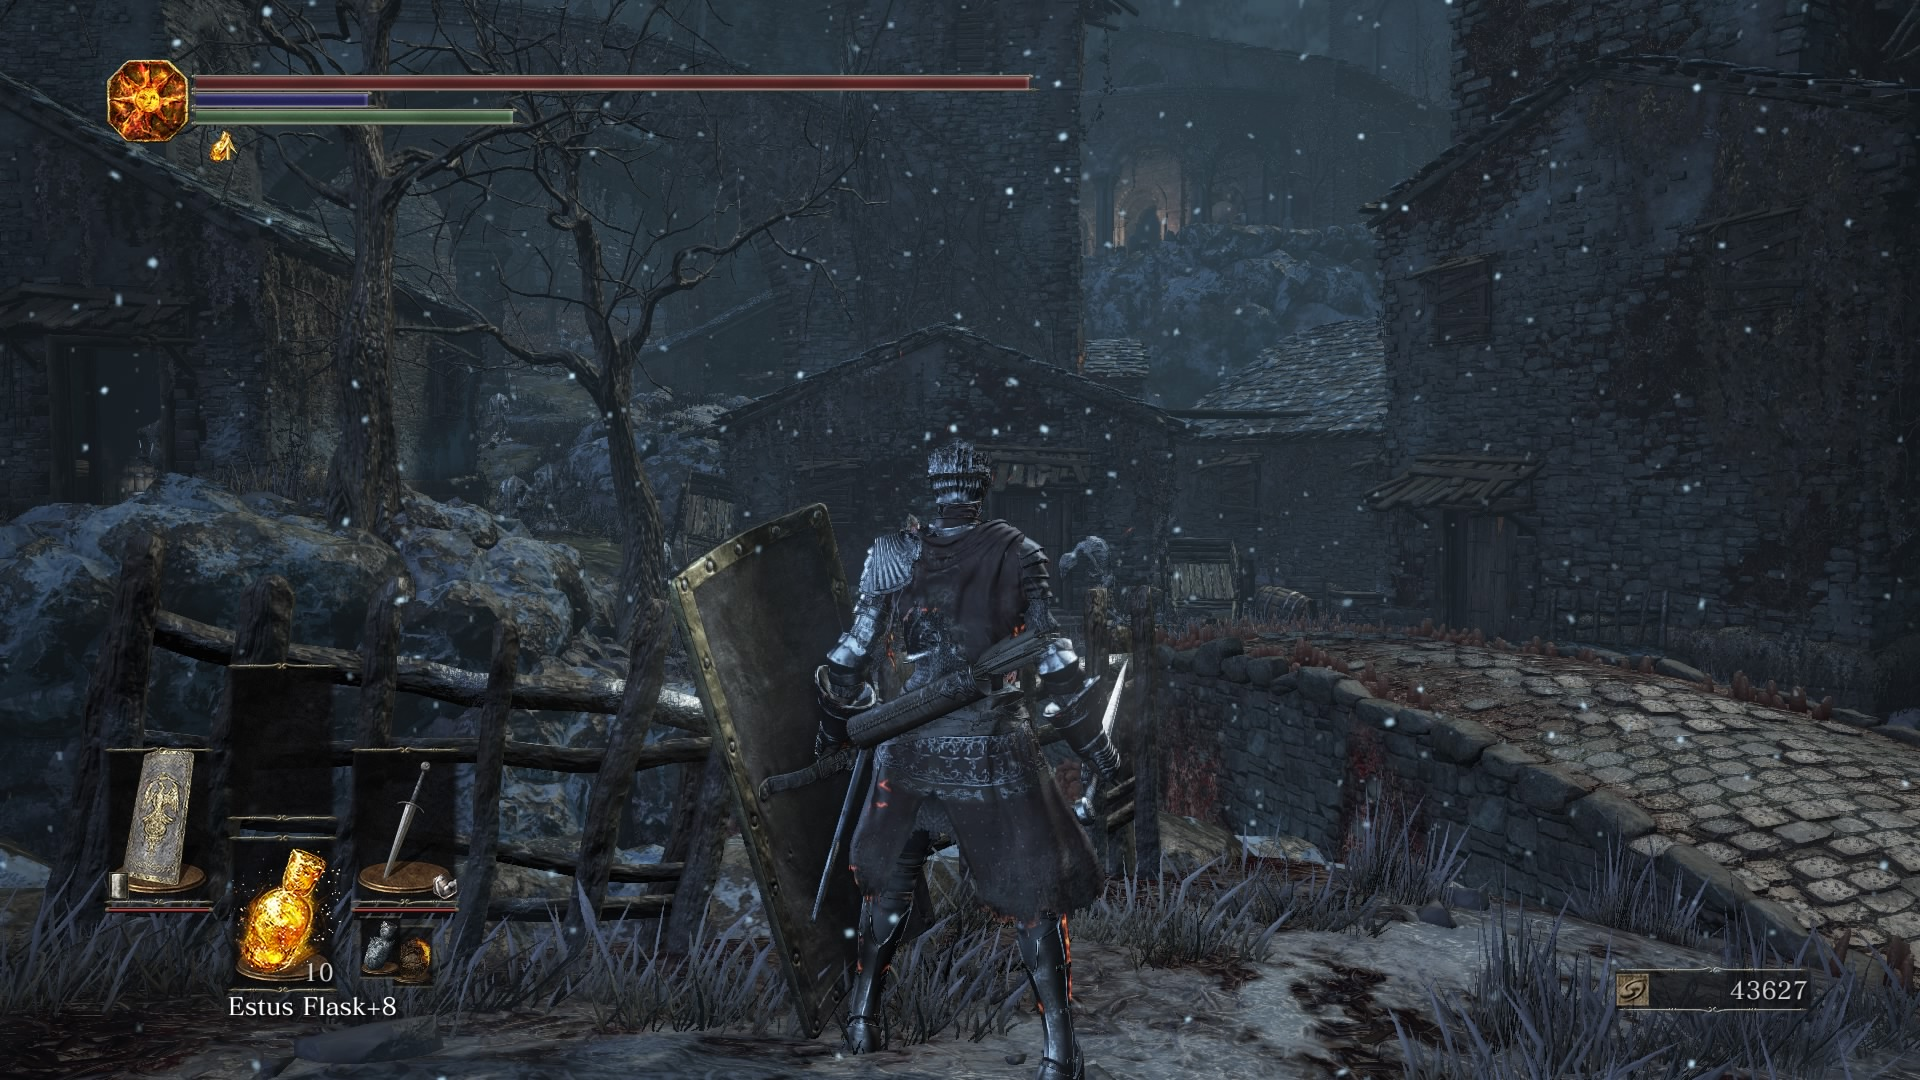 Cross the stone bridge in the Settlement and take the right path to reach a ladder to the rooftops.